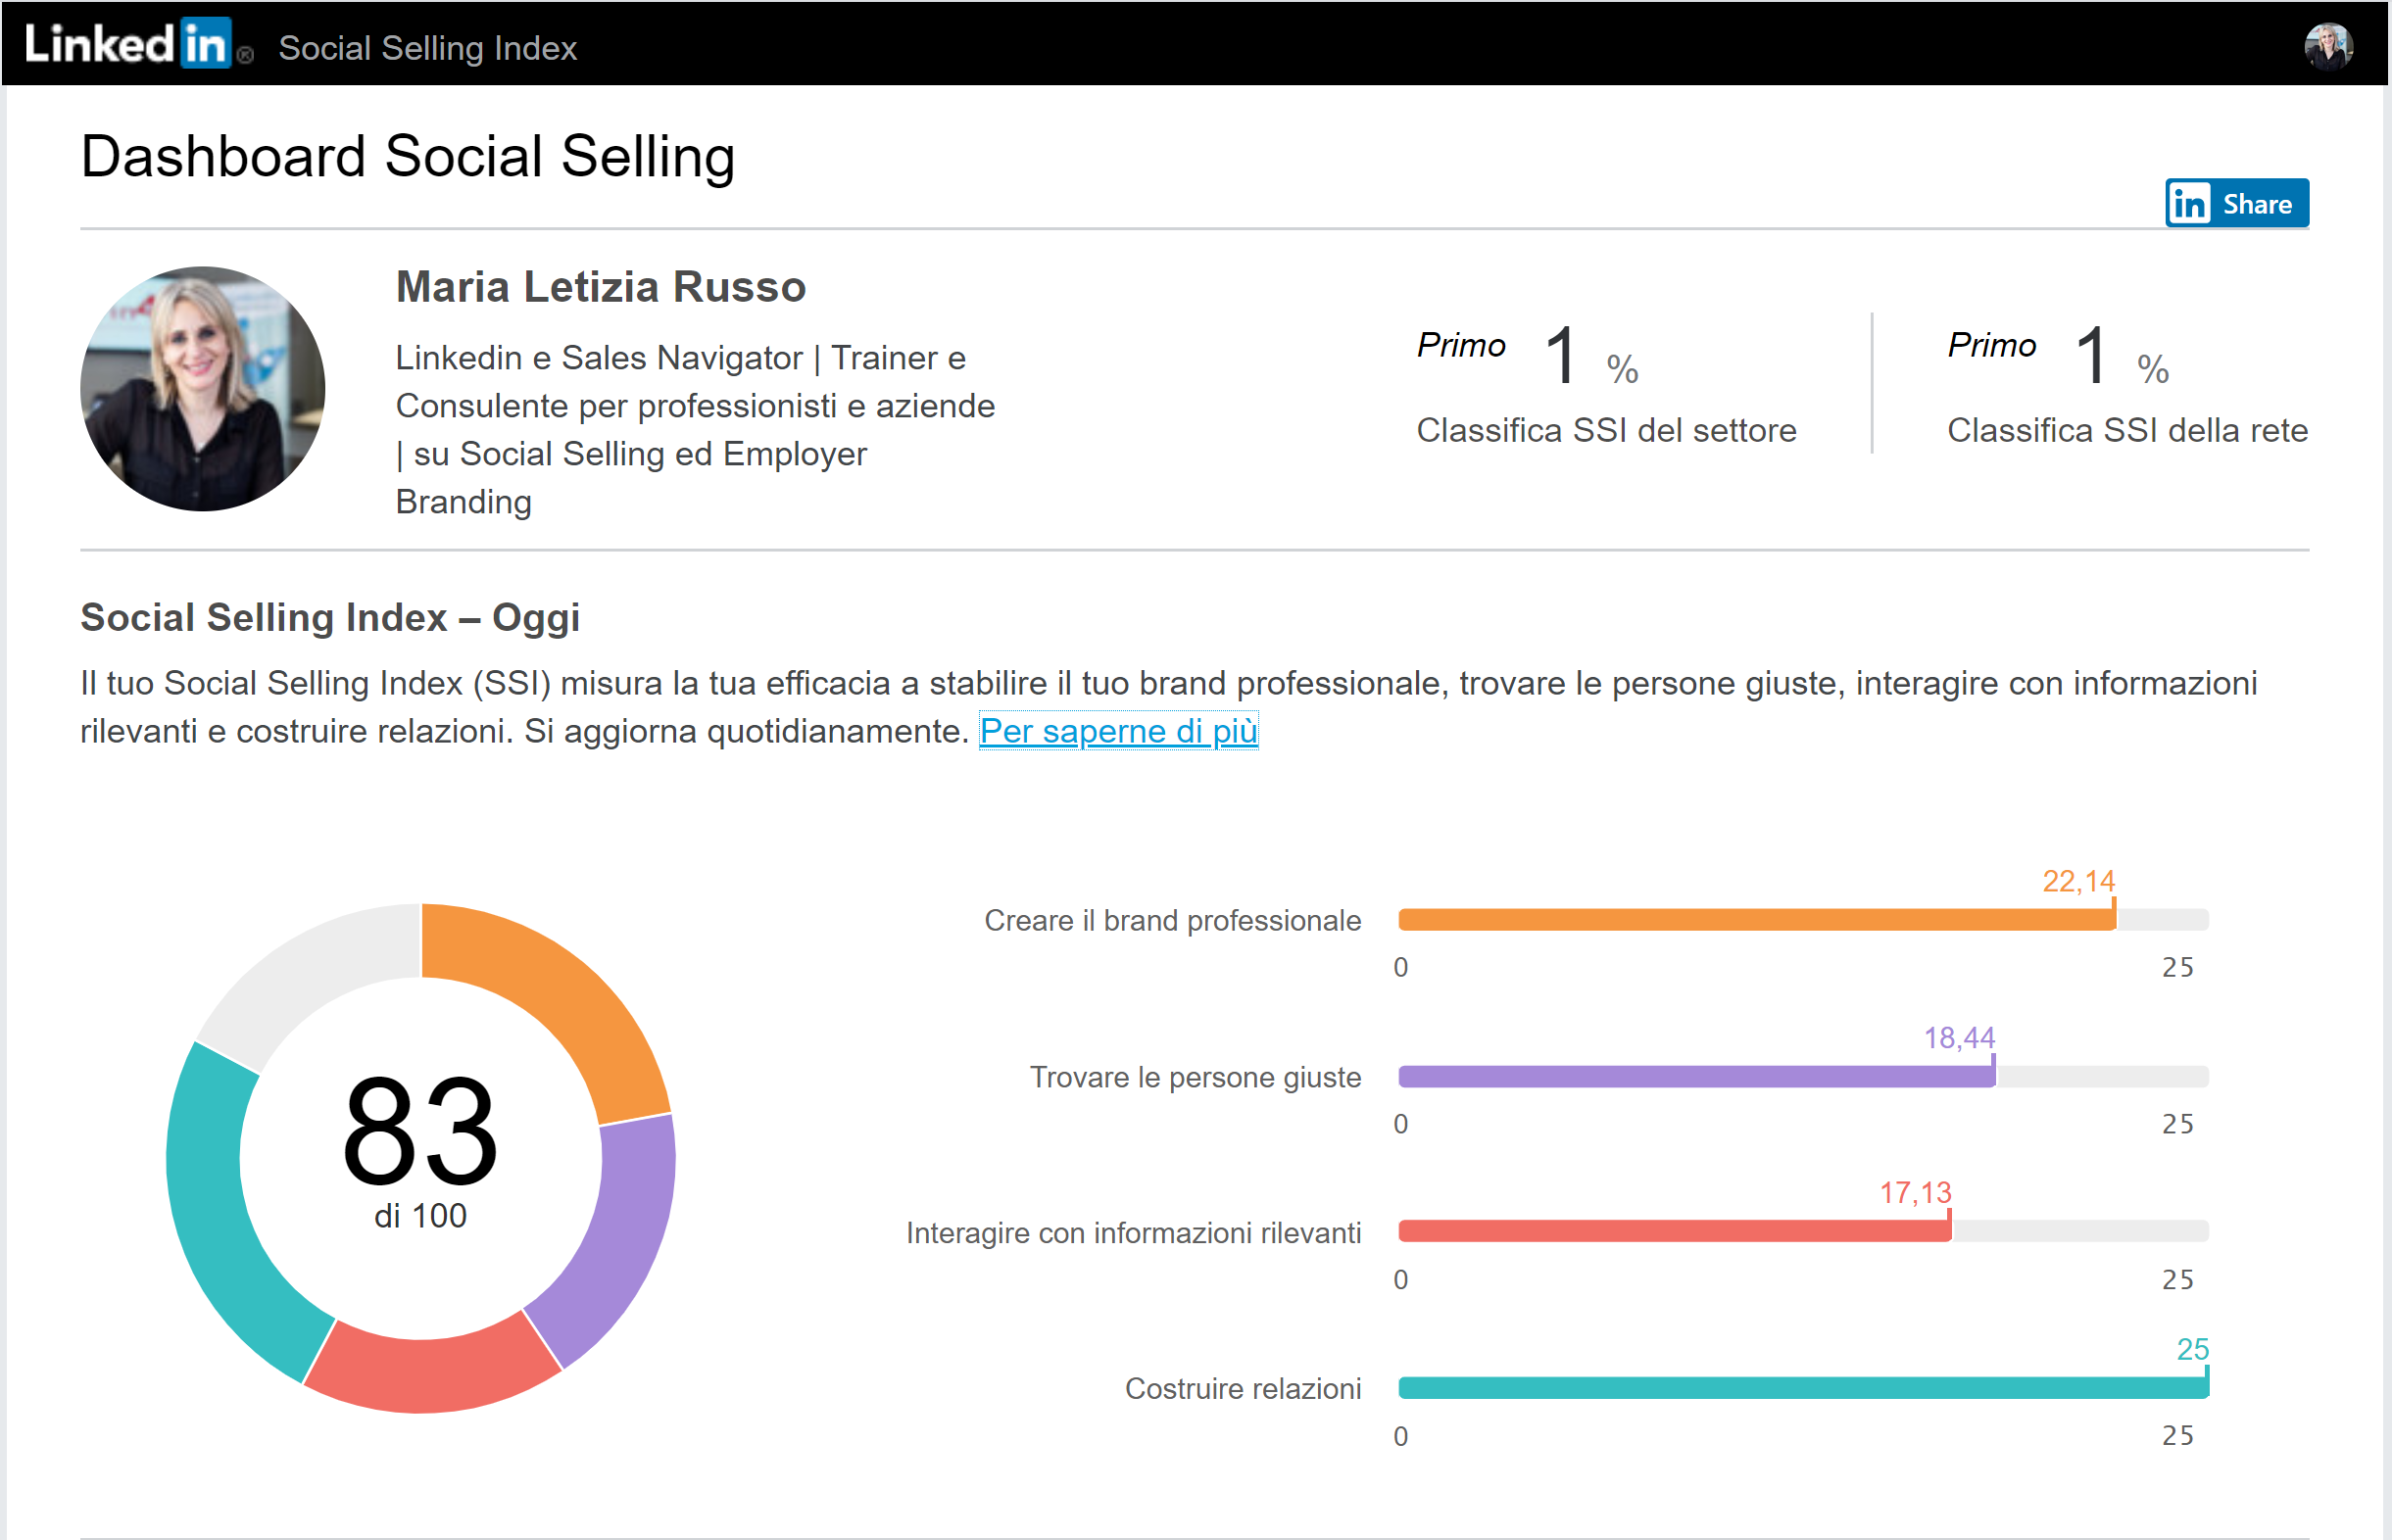 SOCIAL SELLING INDEX DASHBOARD 1